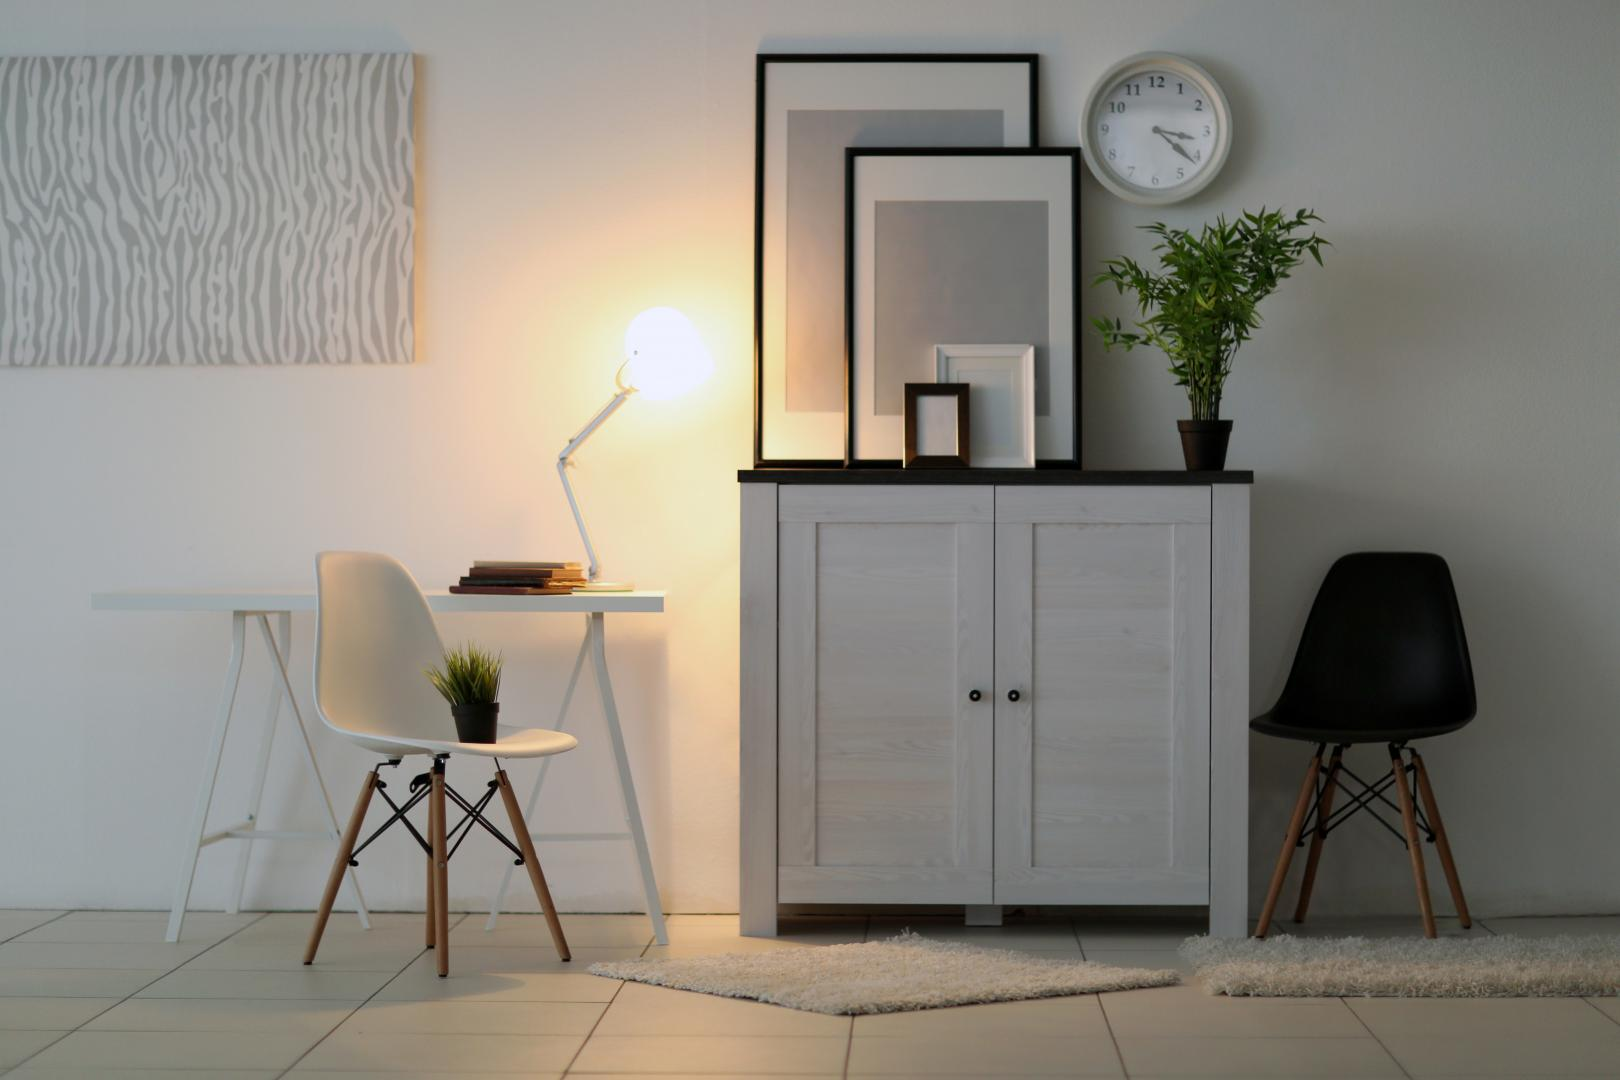 le design belge rayonne milan focus on belgium. Black Bedroom Furniture Sets. Home Design Ideas